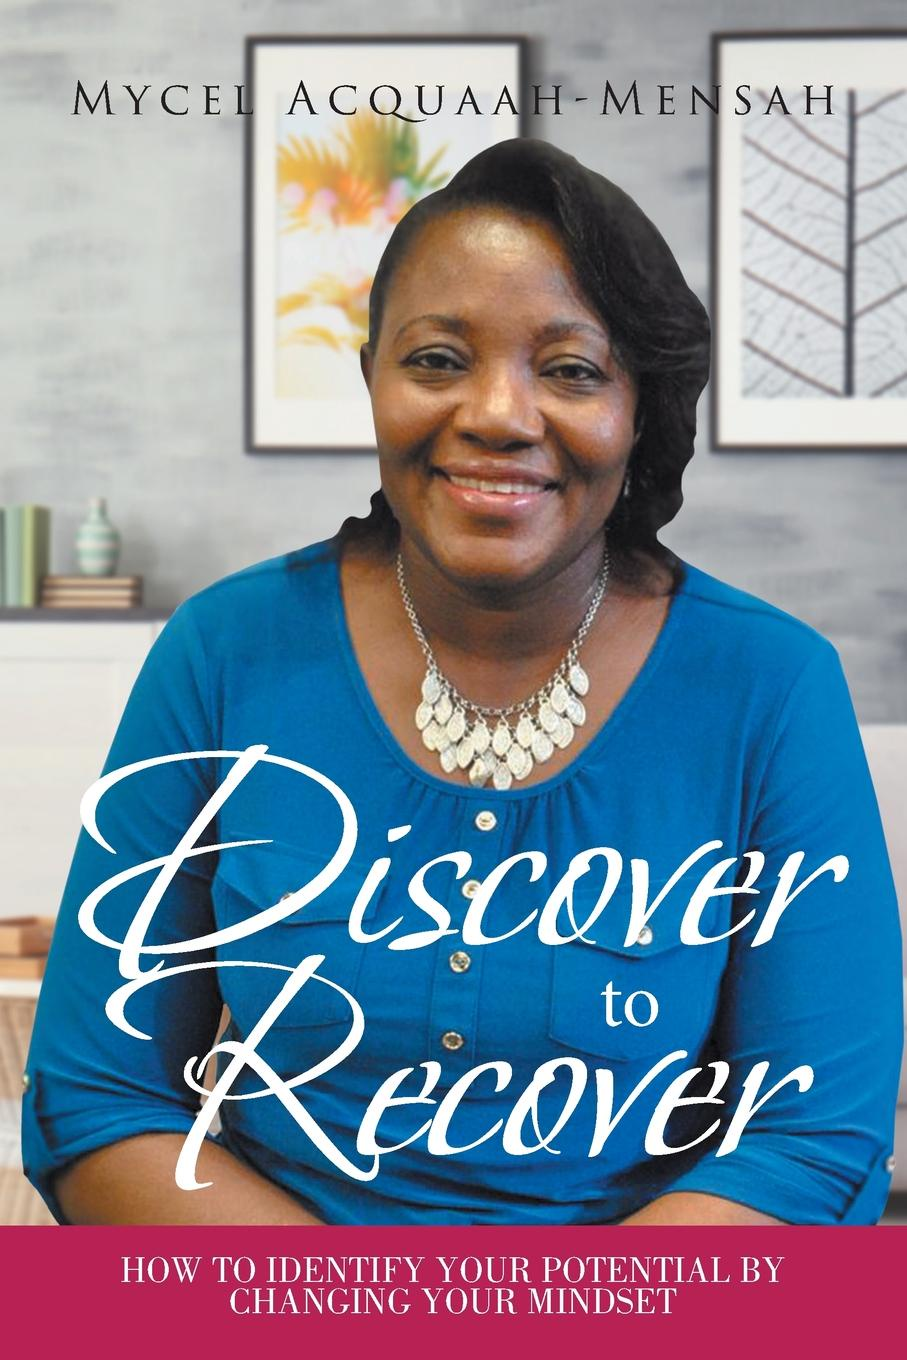 Mycel Acquaah-Mensah Discover to Recover. How To Identify Your Potential By Changing Your Mindset simon hartley how to shine insights into unlocking your potential from proven winners